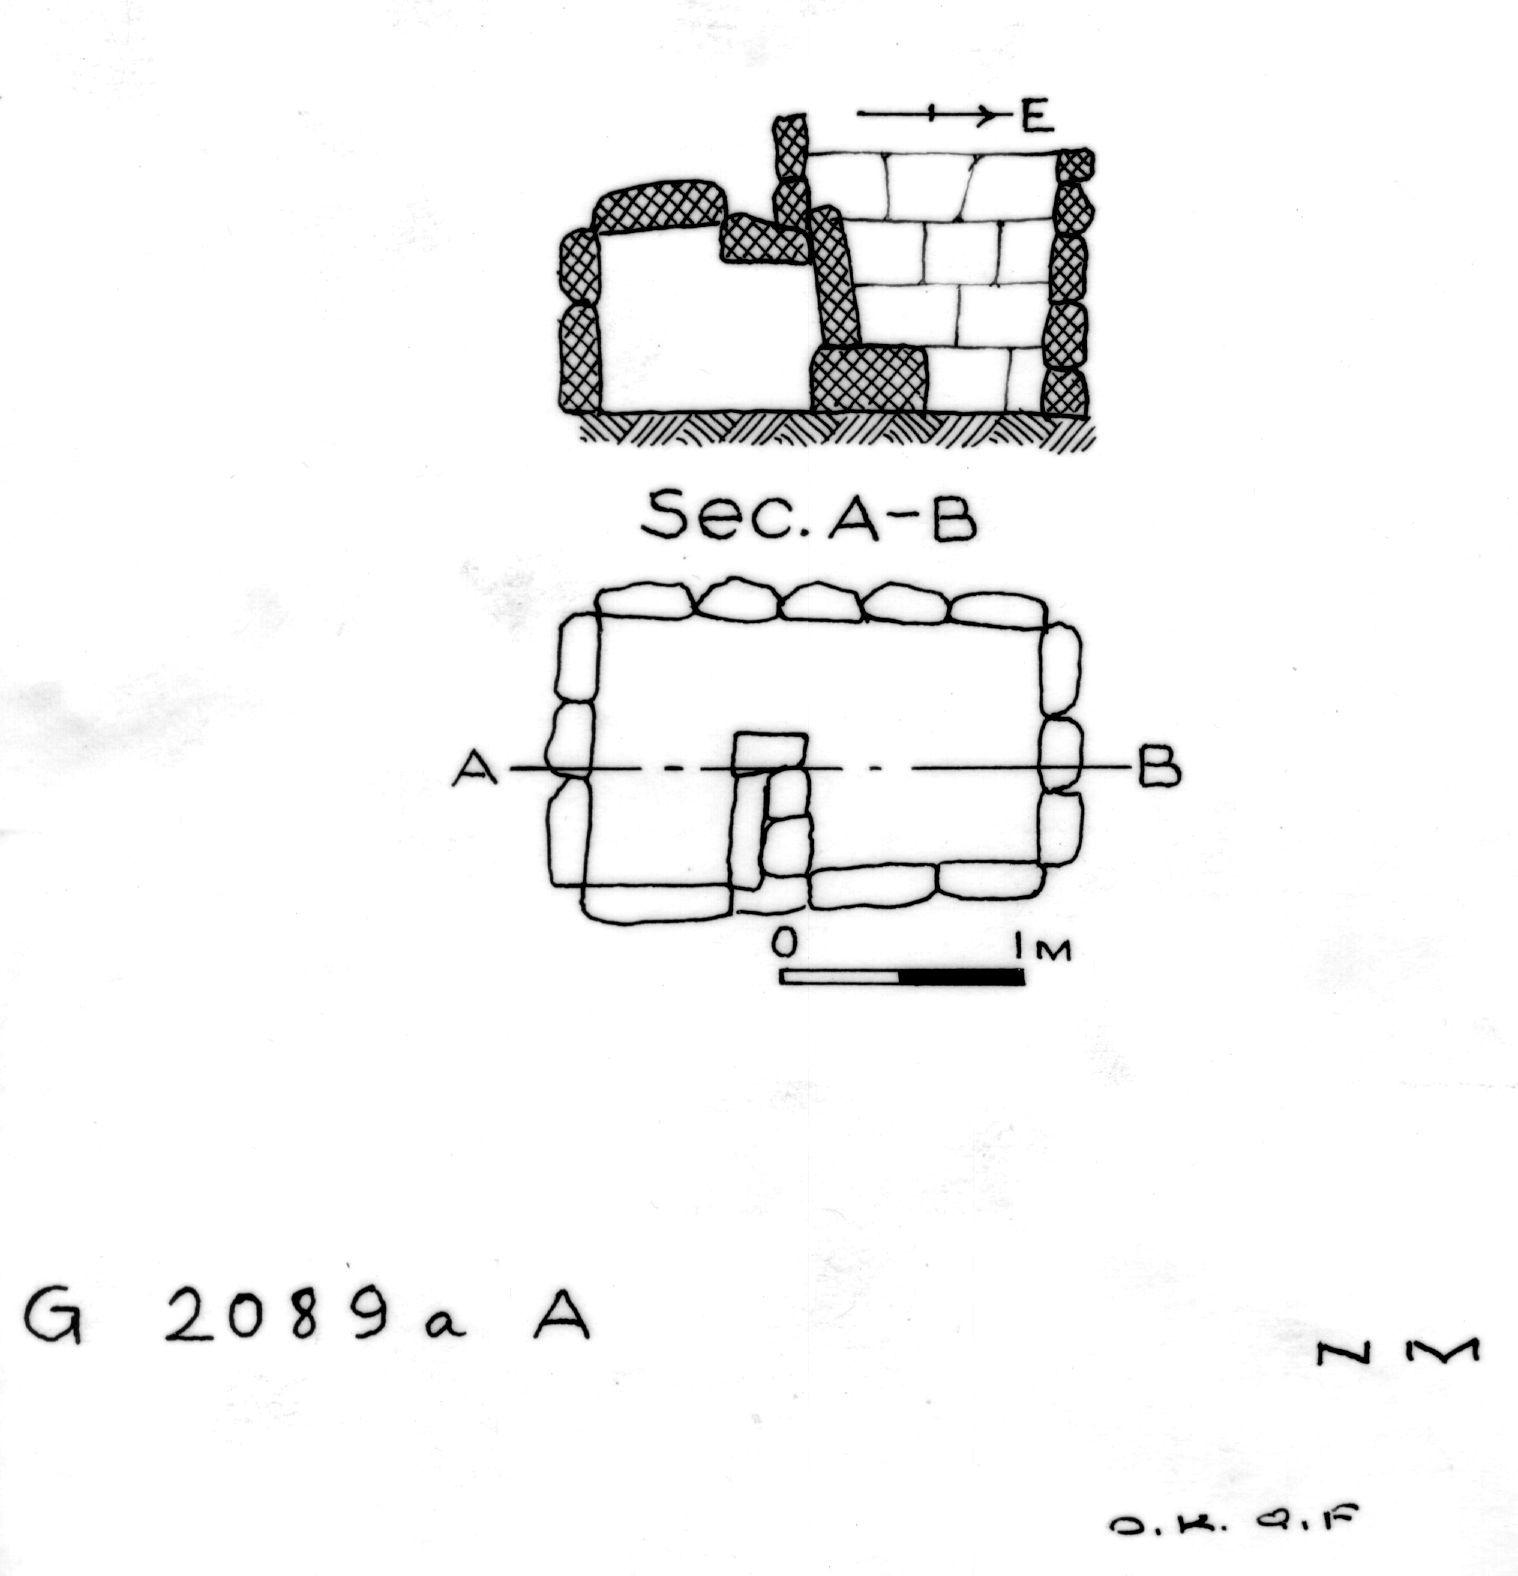 Maps and plans: G 2089a, Shaft A